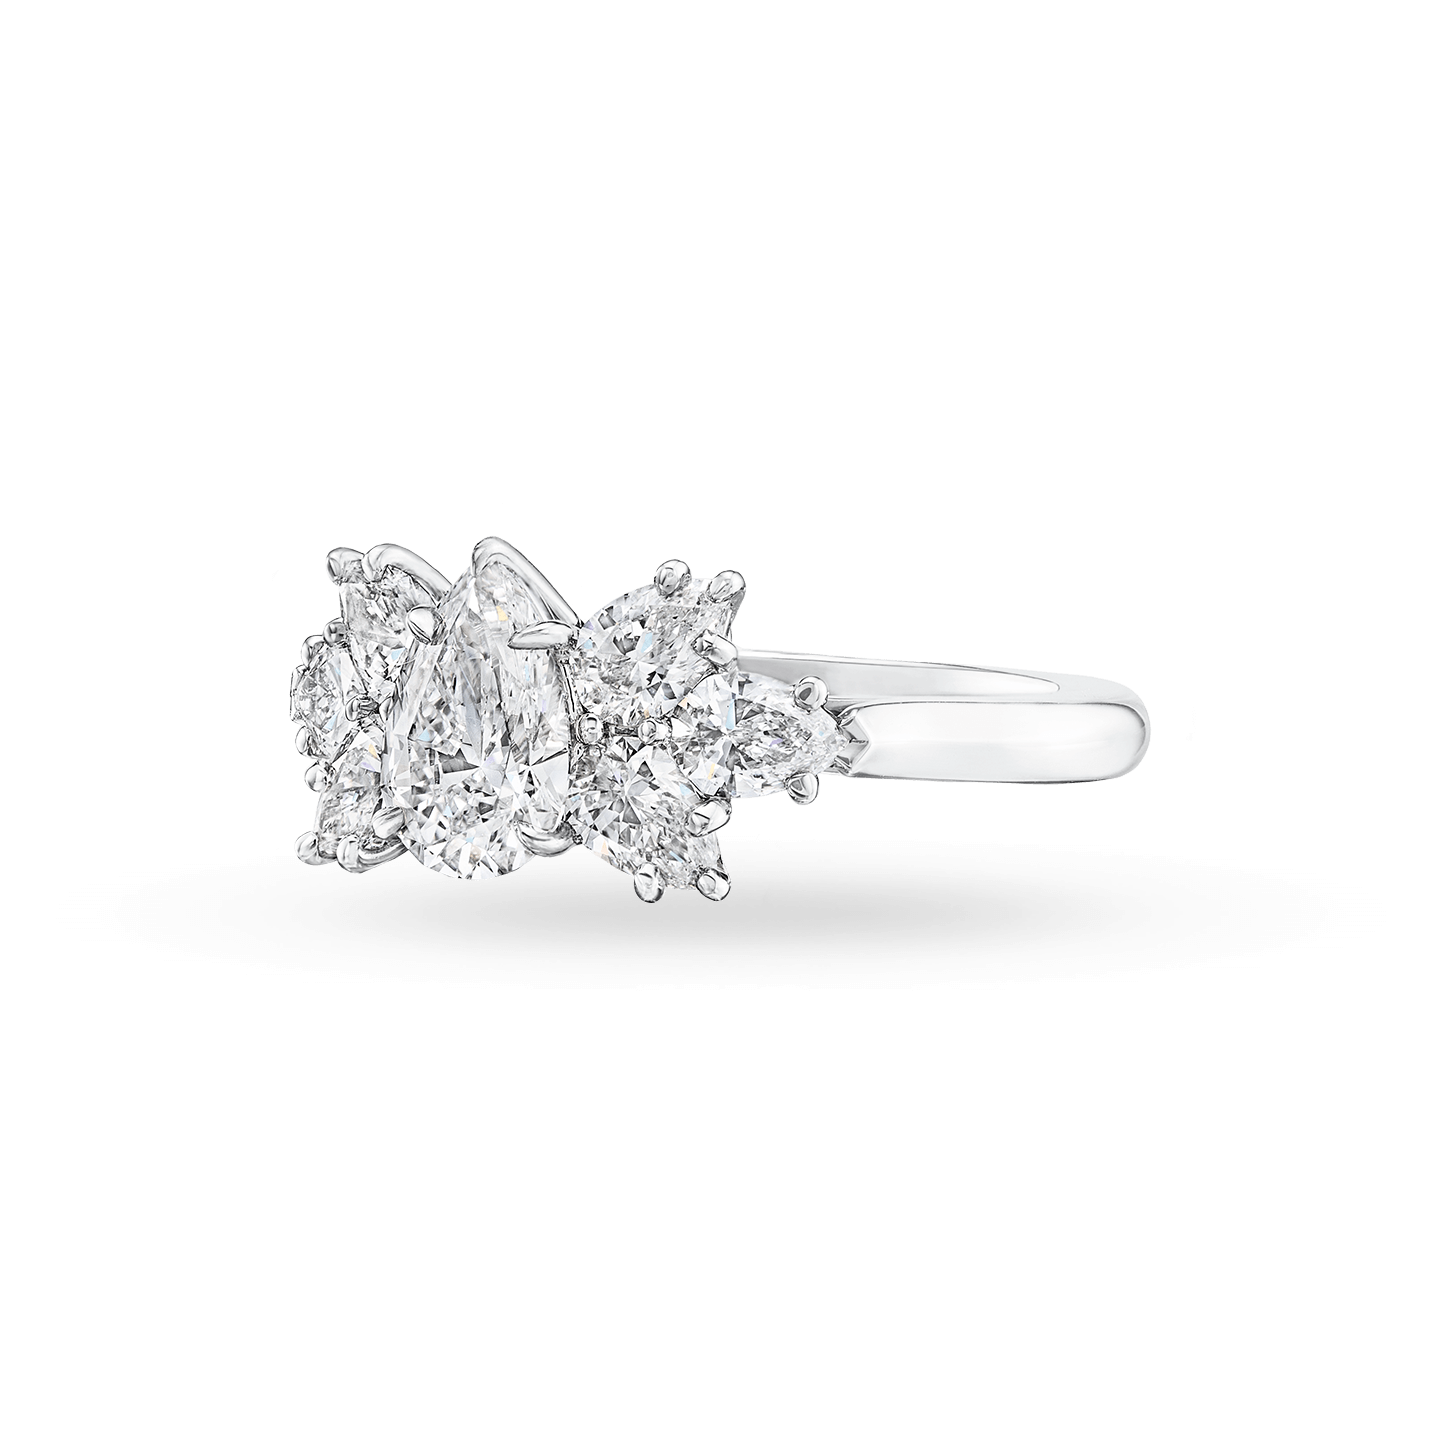 Pear-Shaped Cluster Diamond Engagement Ring, Product Image 3